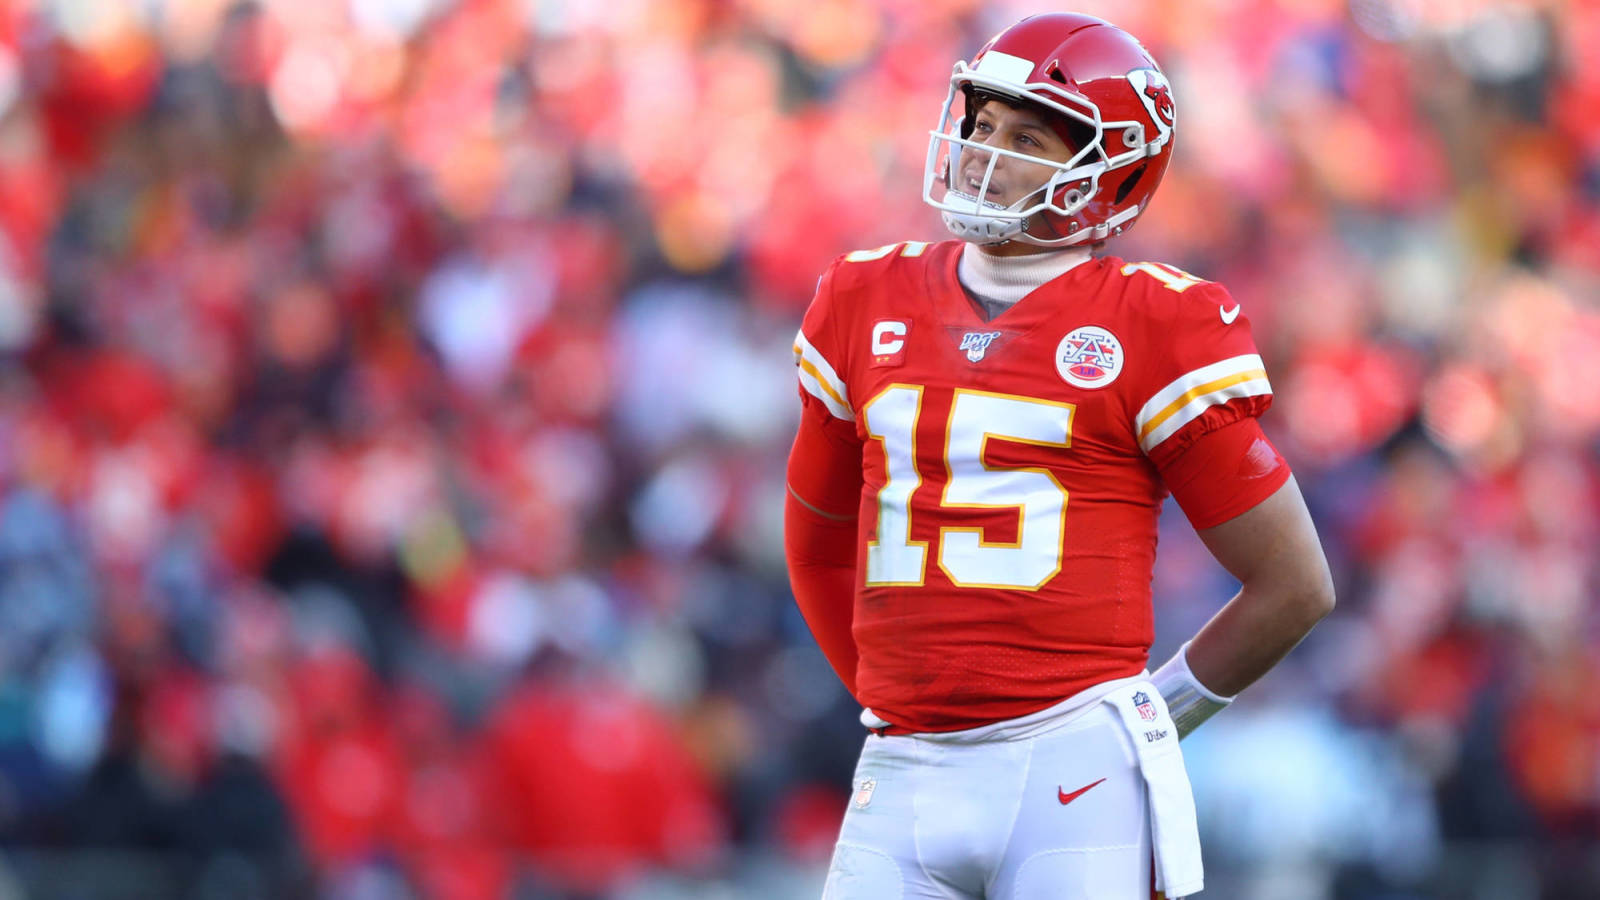 Projecting-first-loss-every-nfl-team